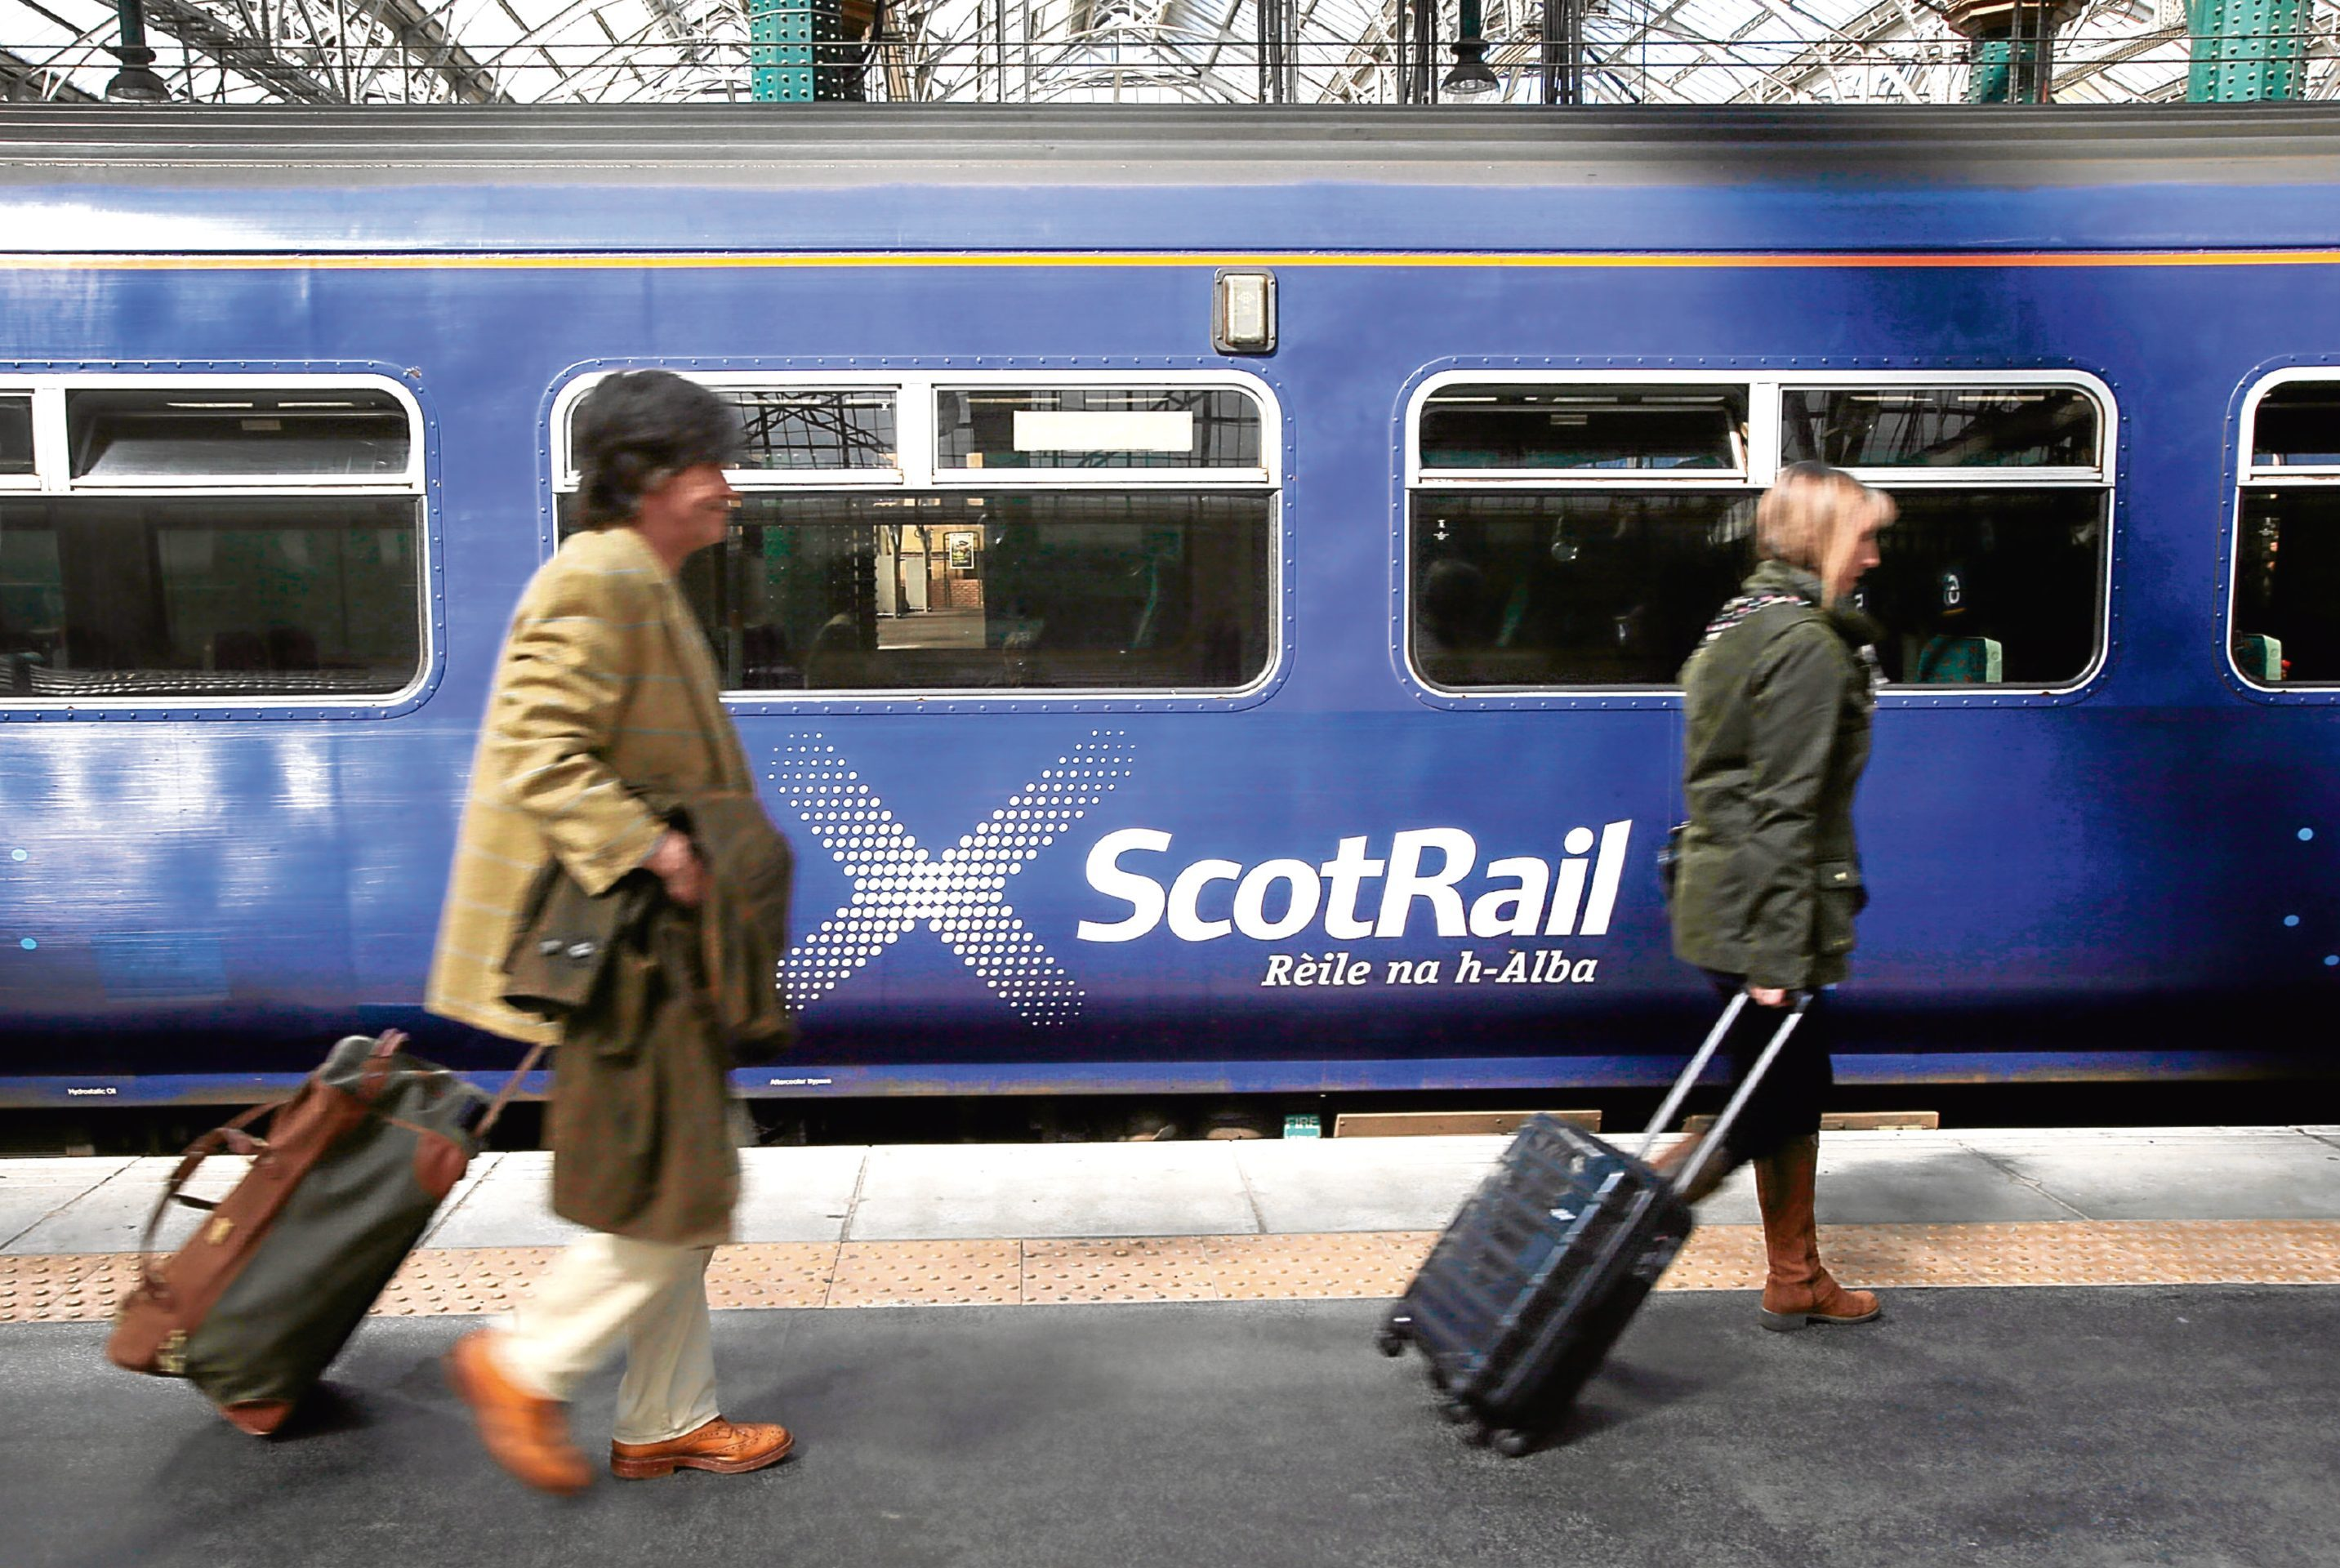 ScotRail has apologised again for the standard of its service.